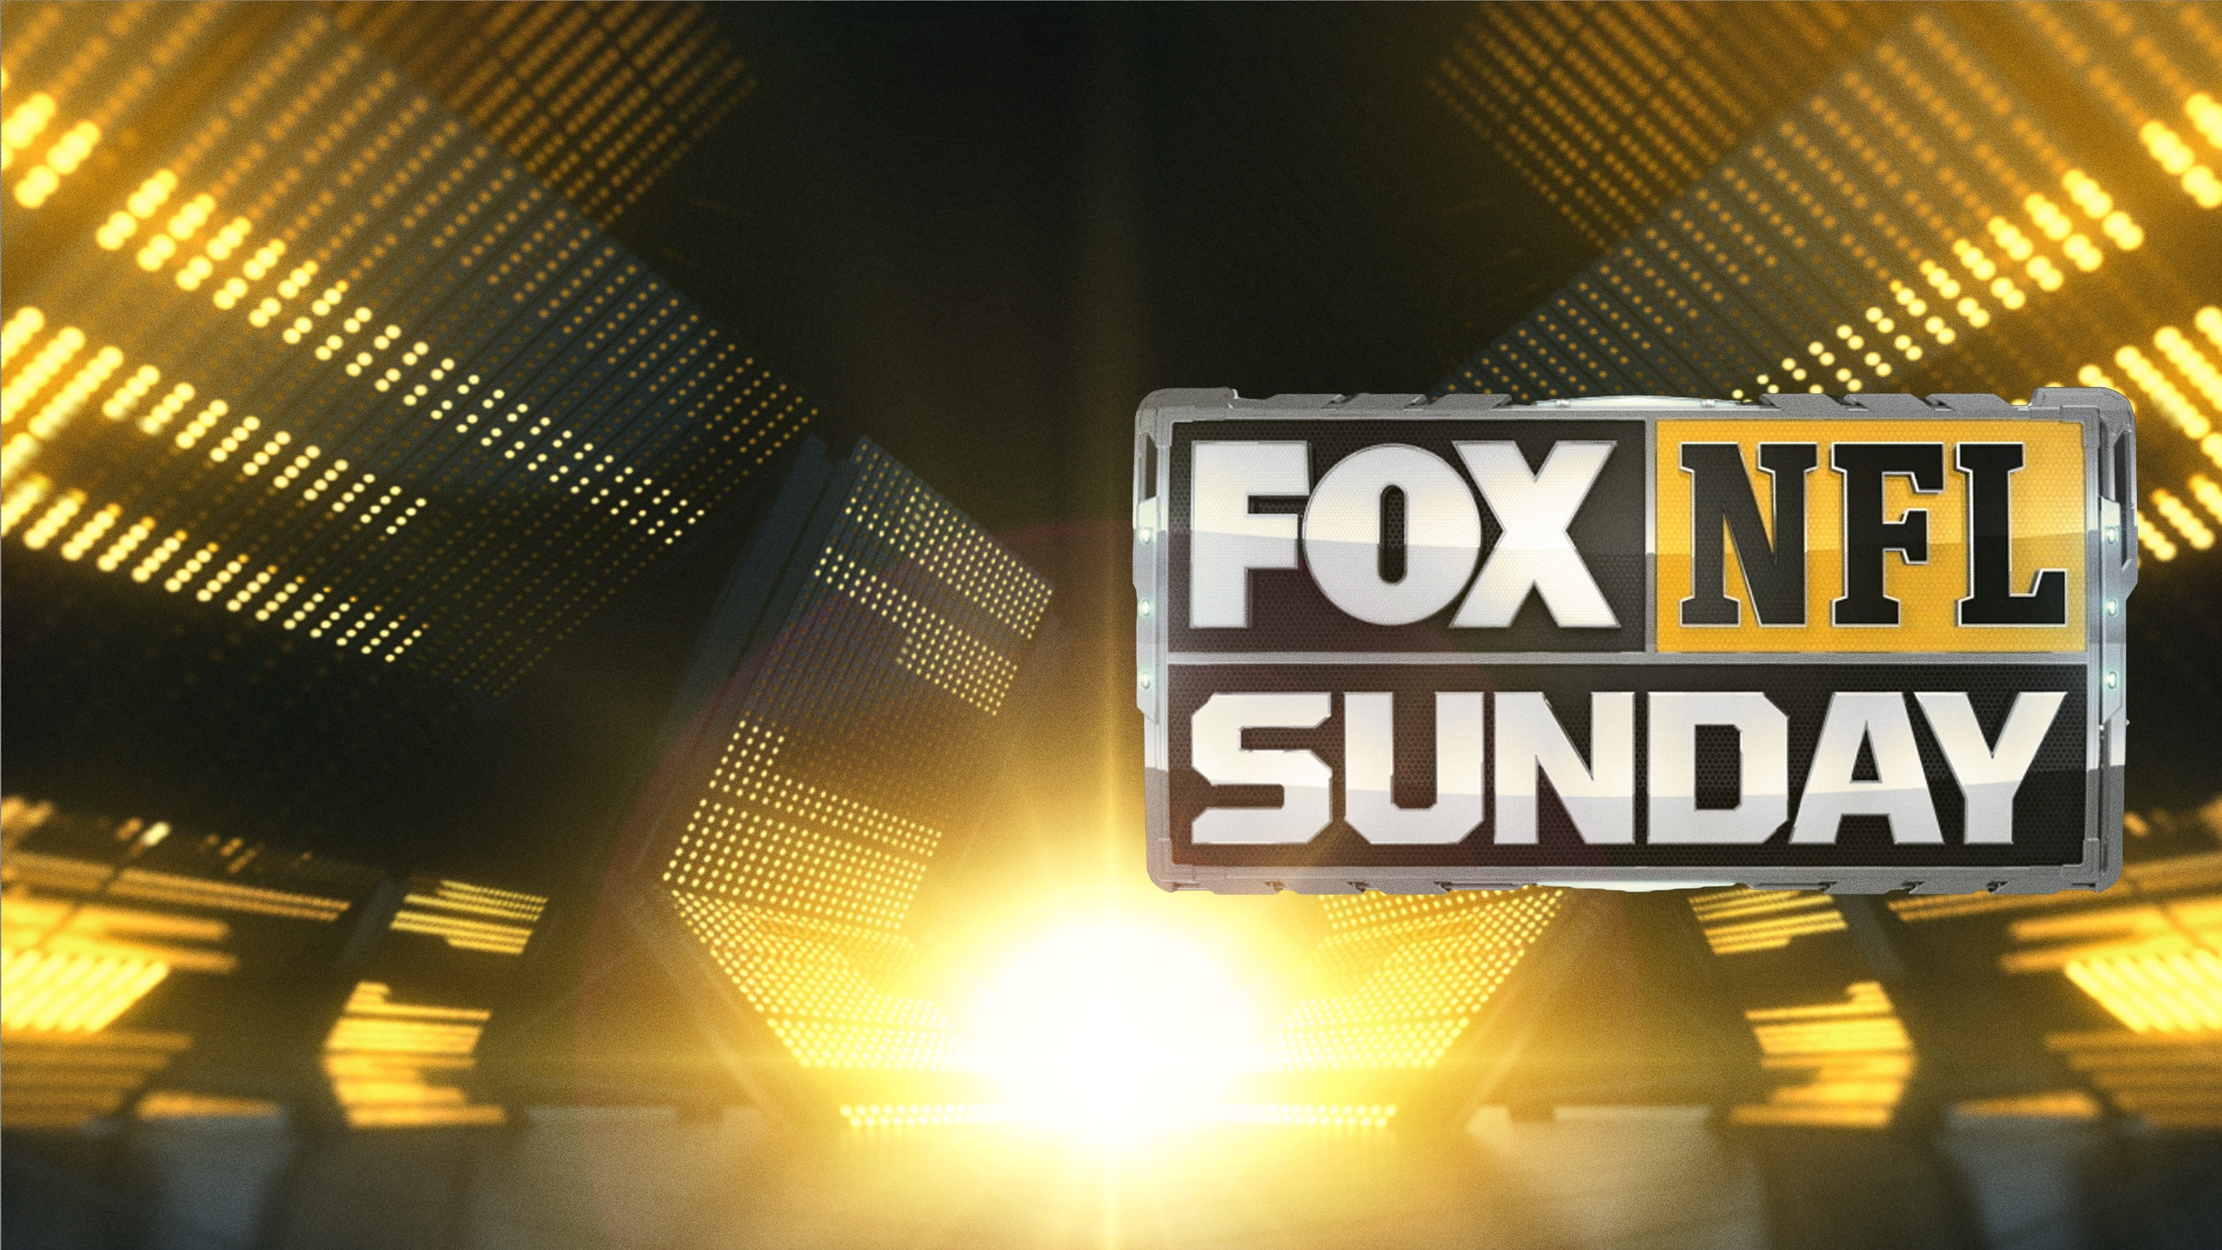 FOX NFL Sunday seriesDetail